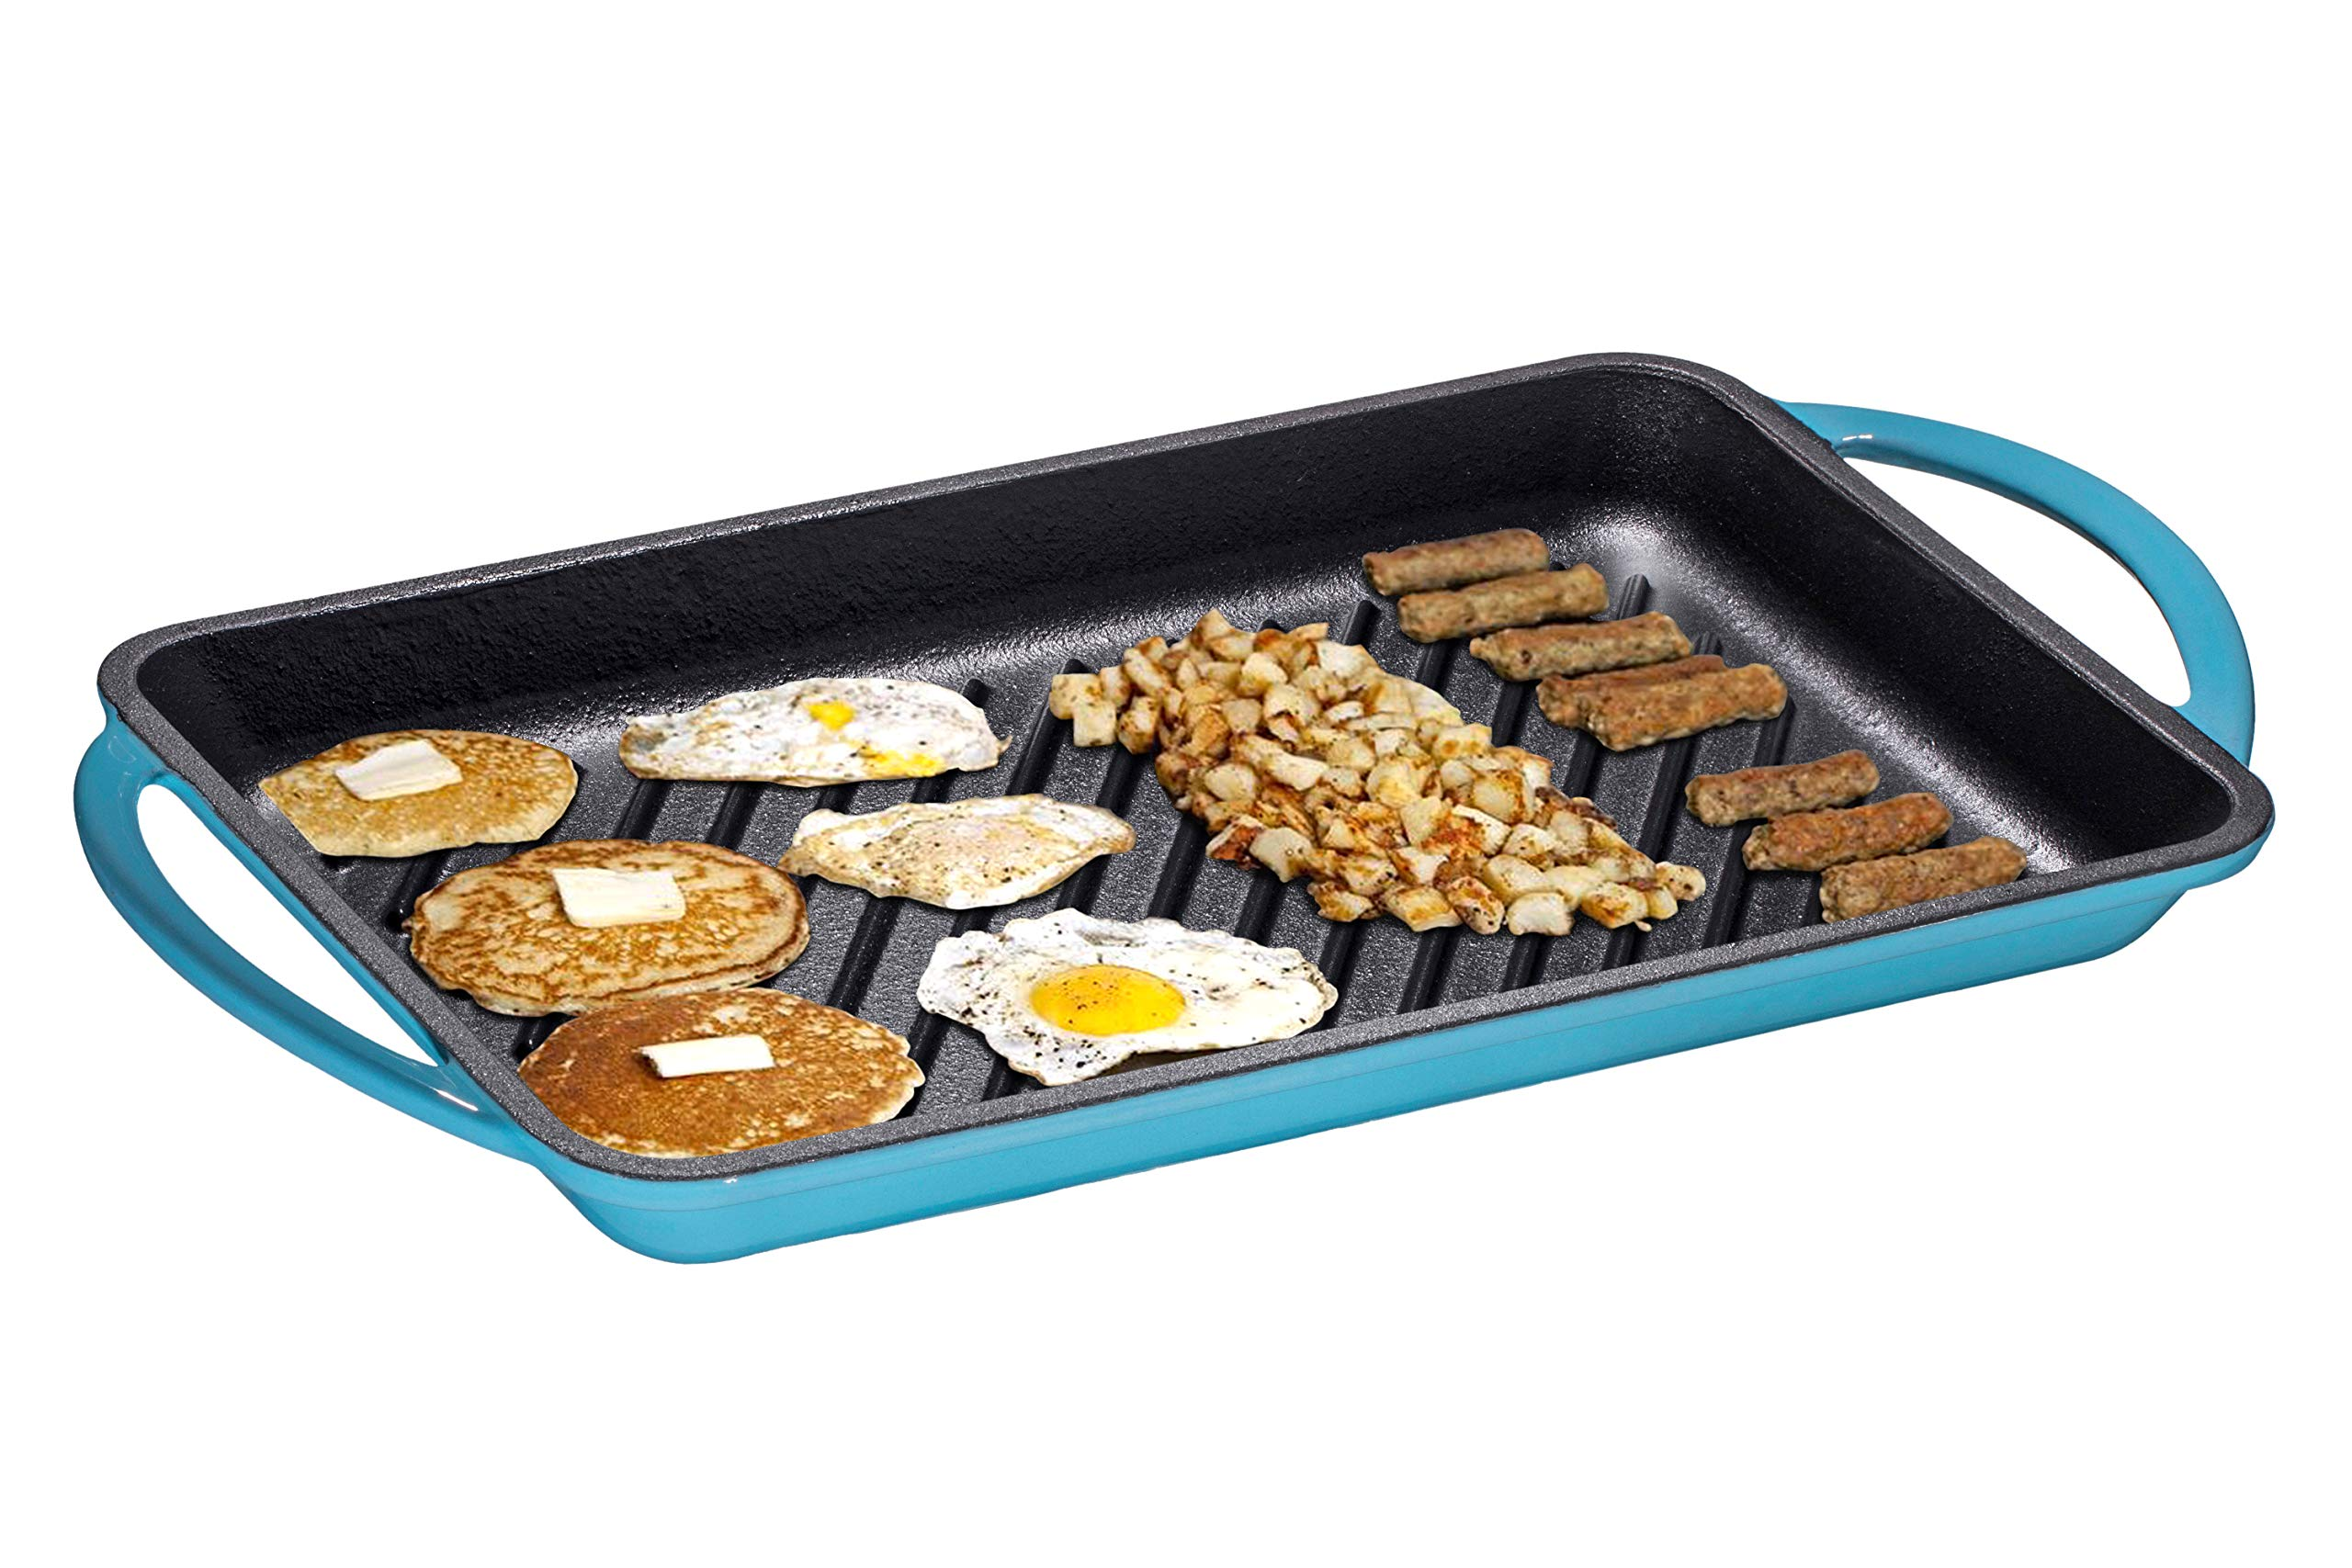 Enameled Cast-Iron Rectangular Grill Pan, Loop Handles, Turquoise 9.5'' x 13.5'' by Bruntmor